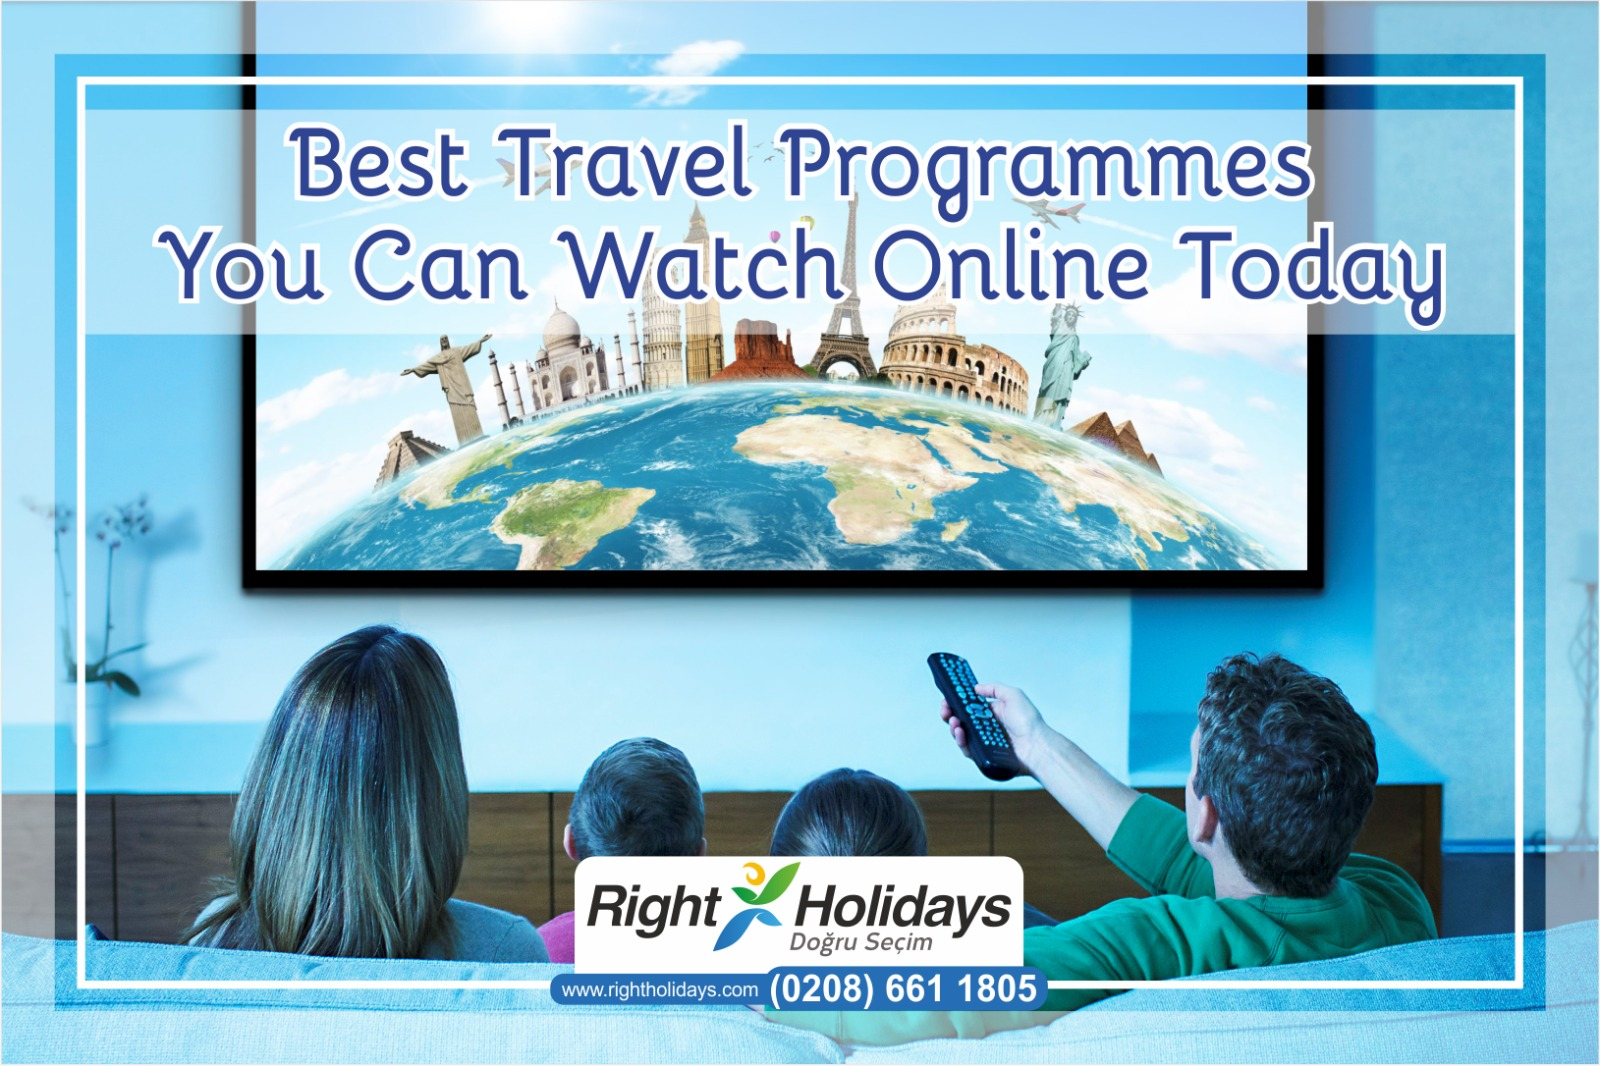 Best Travel Programmes You Can Watch Online Today